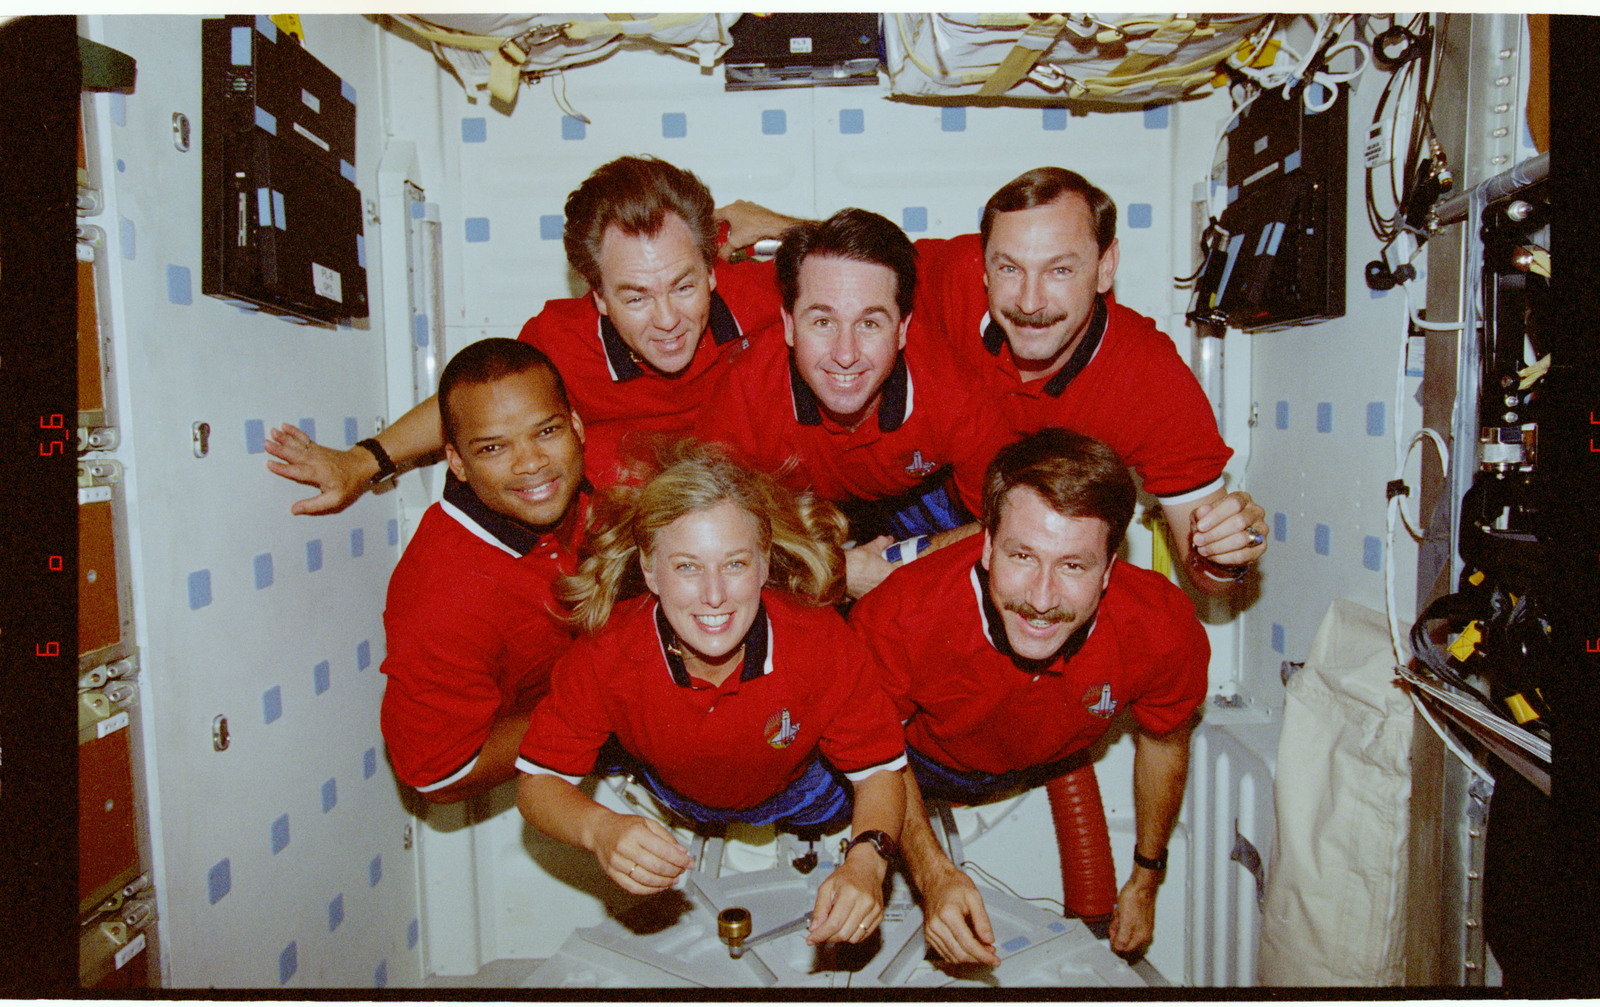 STS085-320-009 - STS-085 - STS-85 crew portraits in the middeck hatch and in front of lockers